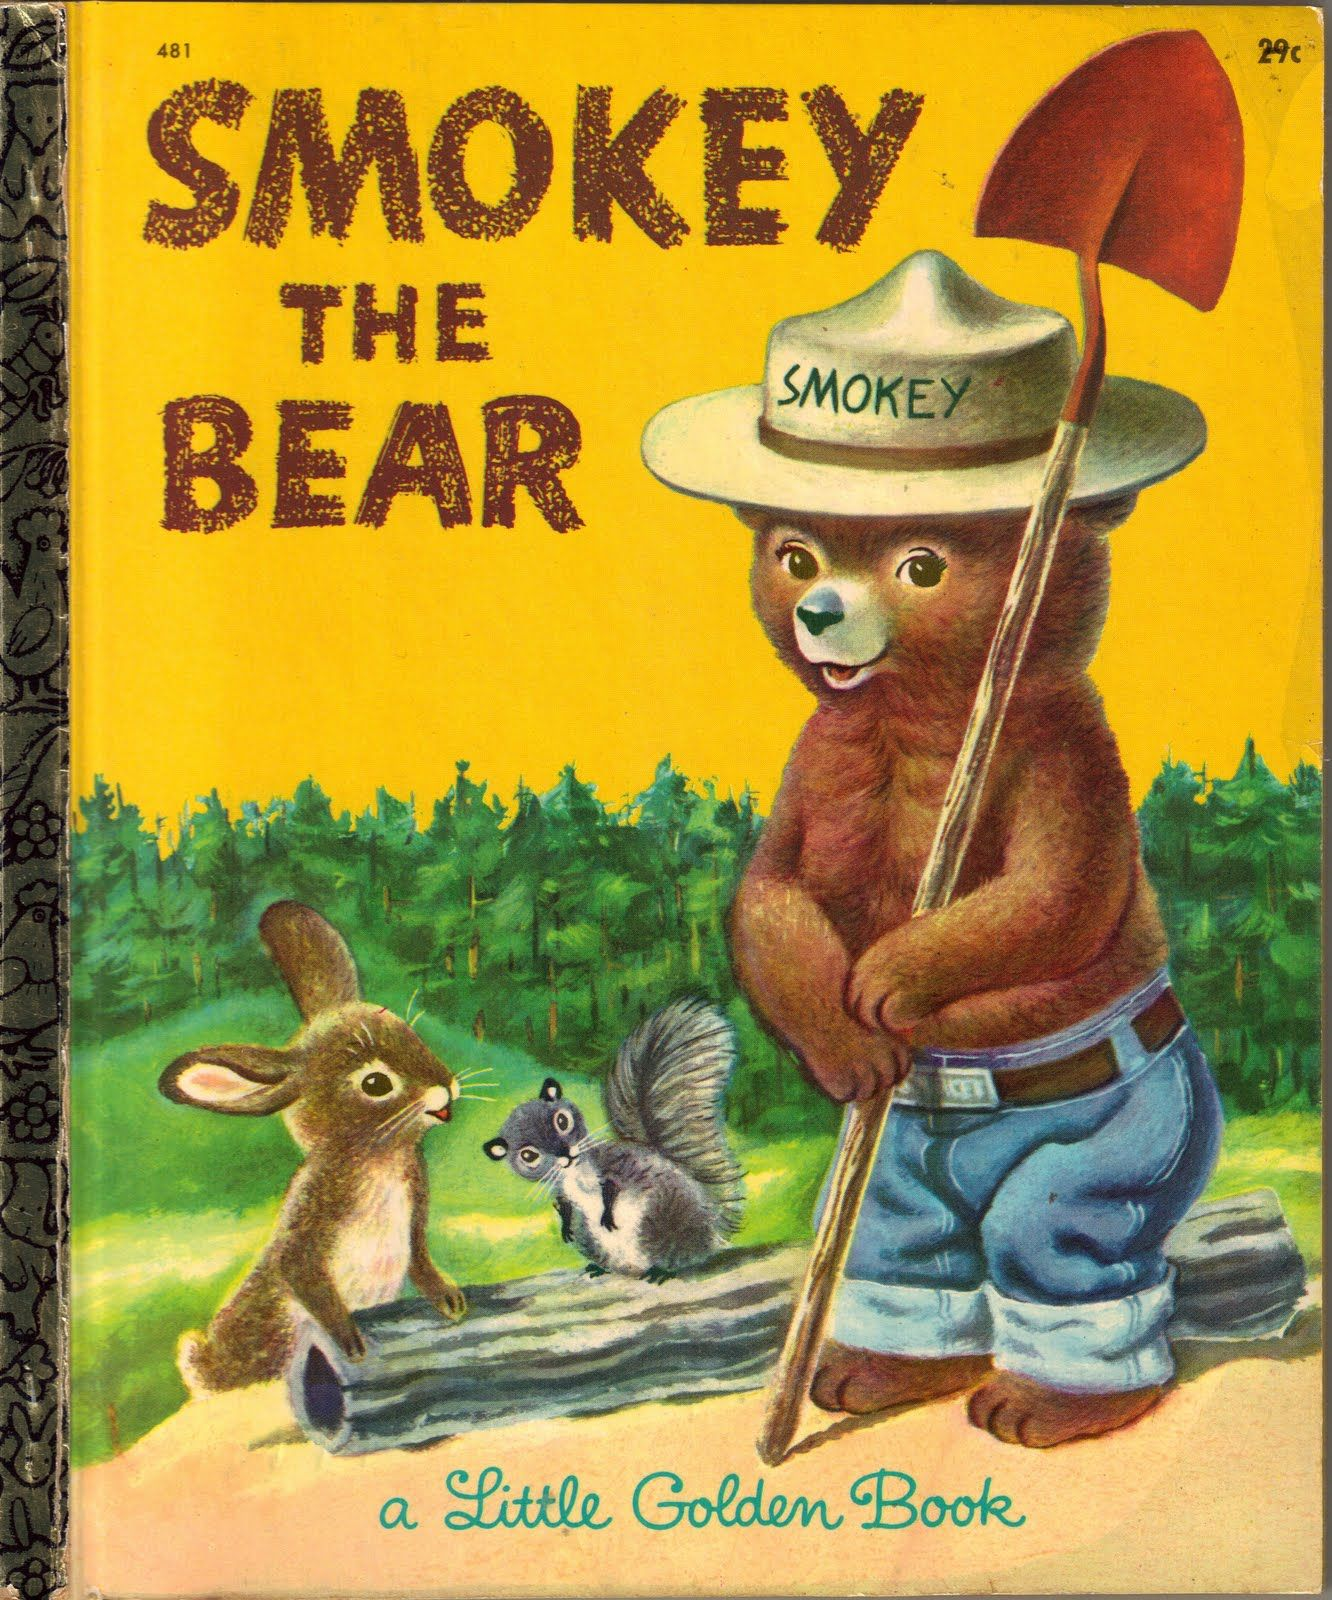 Smokey The Bear, illustrated by Richard Scarry